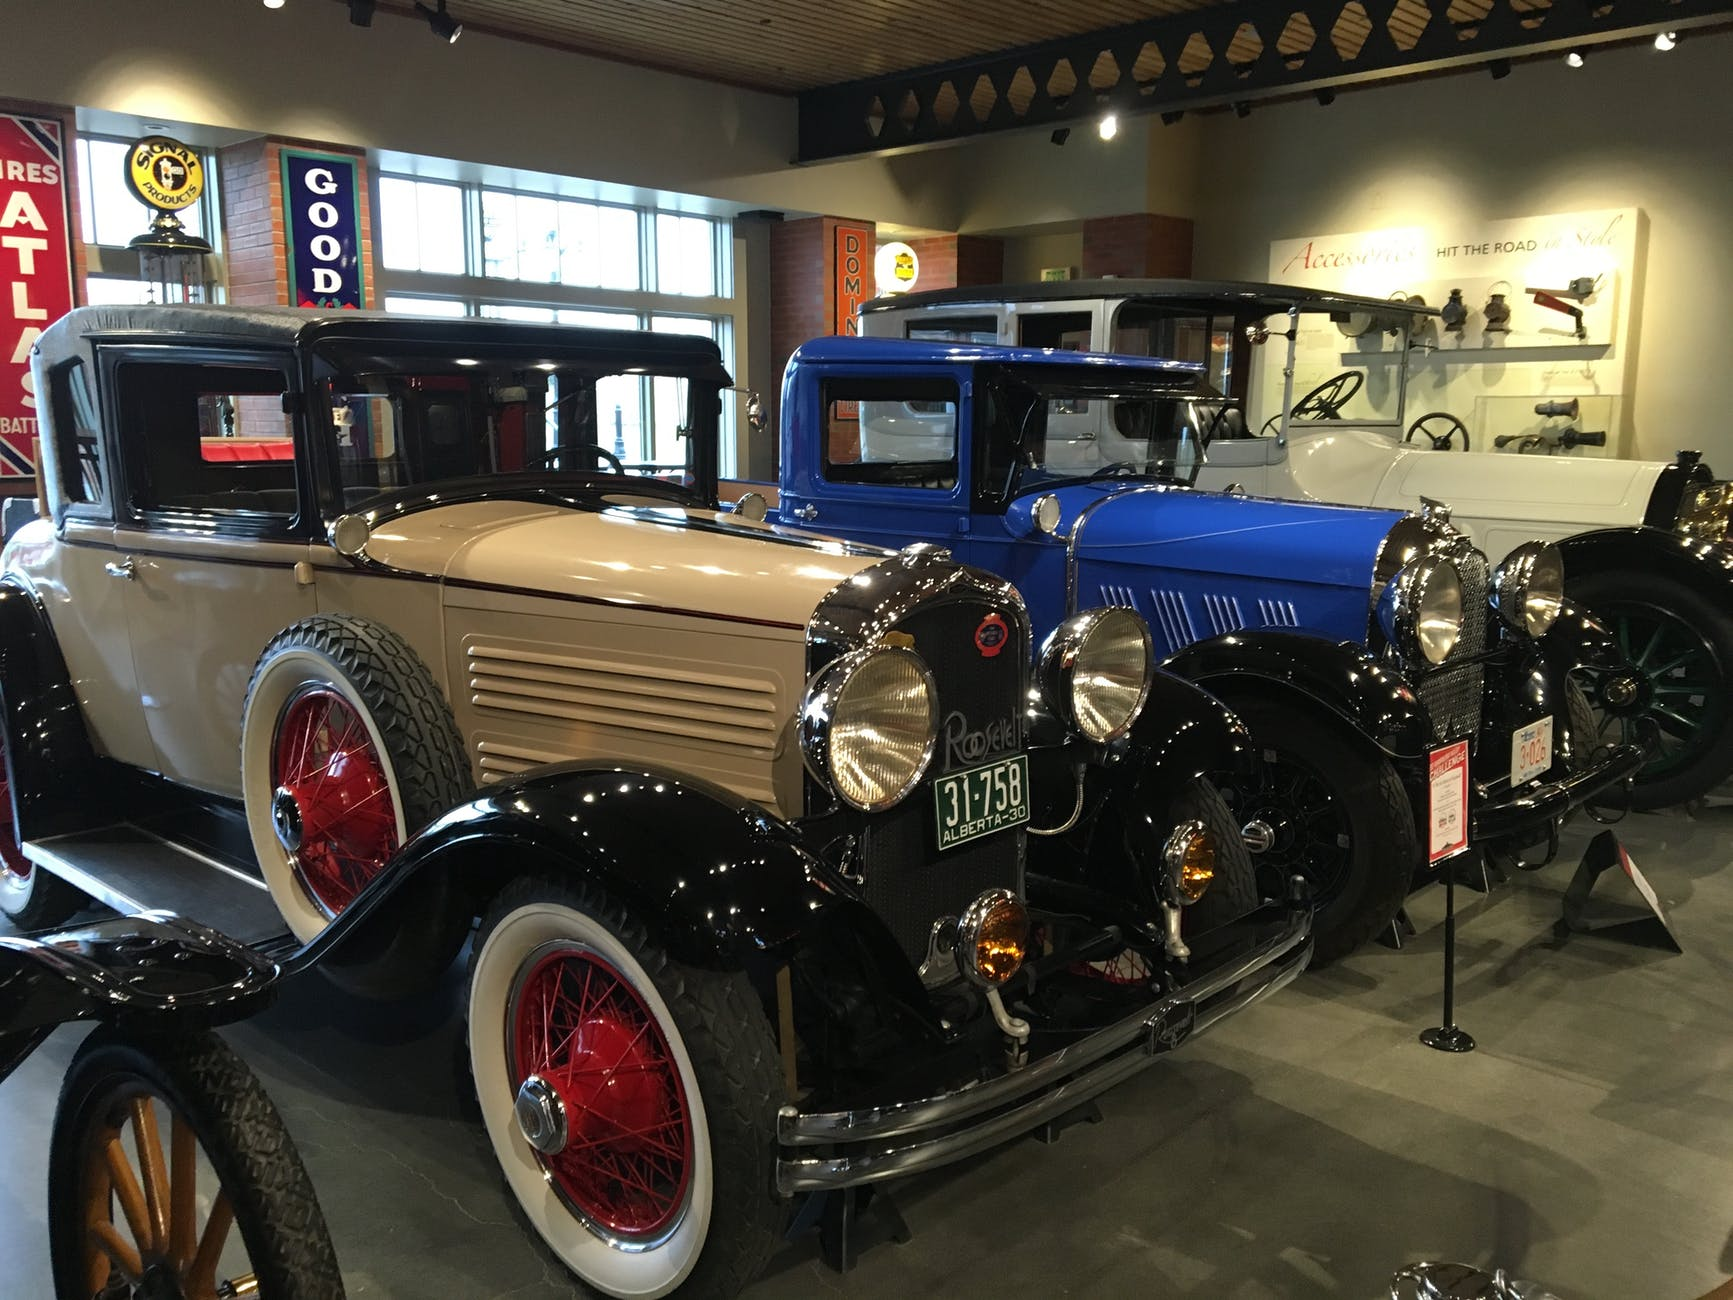 assorted vintage cars in a well lighted room